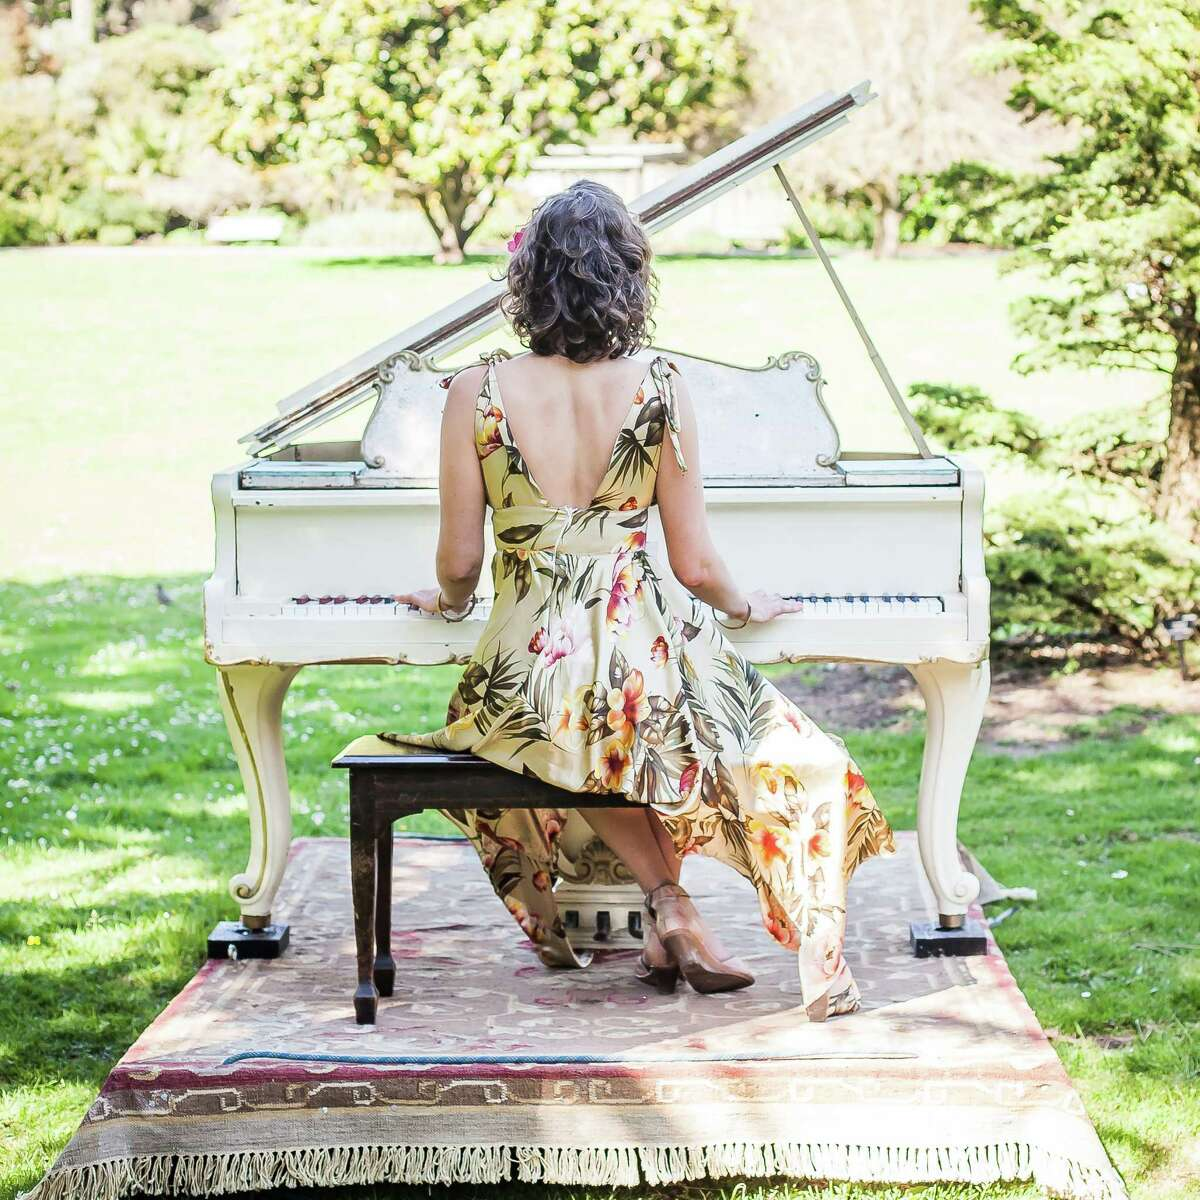 Flower Piano, taking place July 9 - 20, 2015.